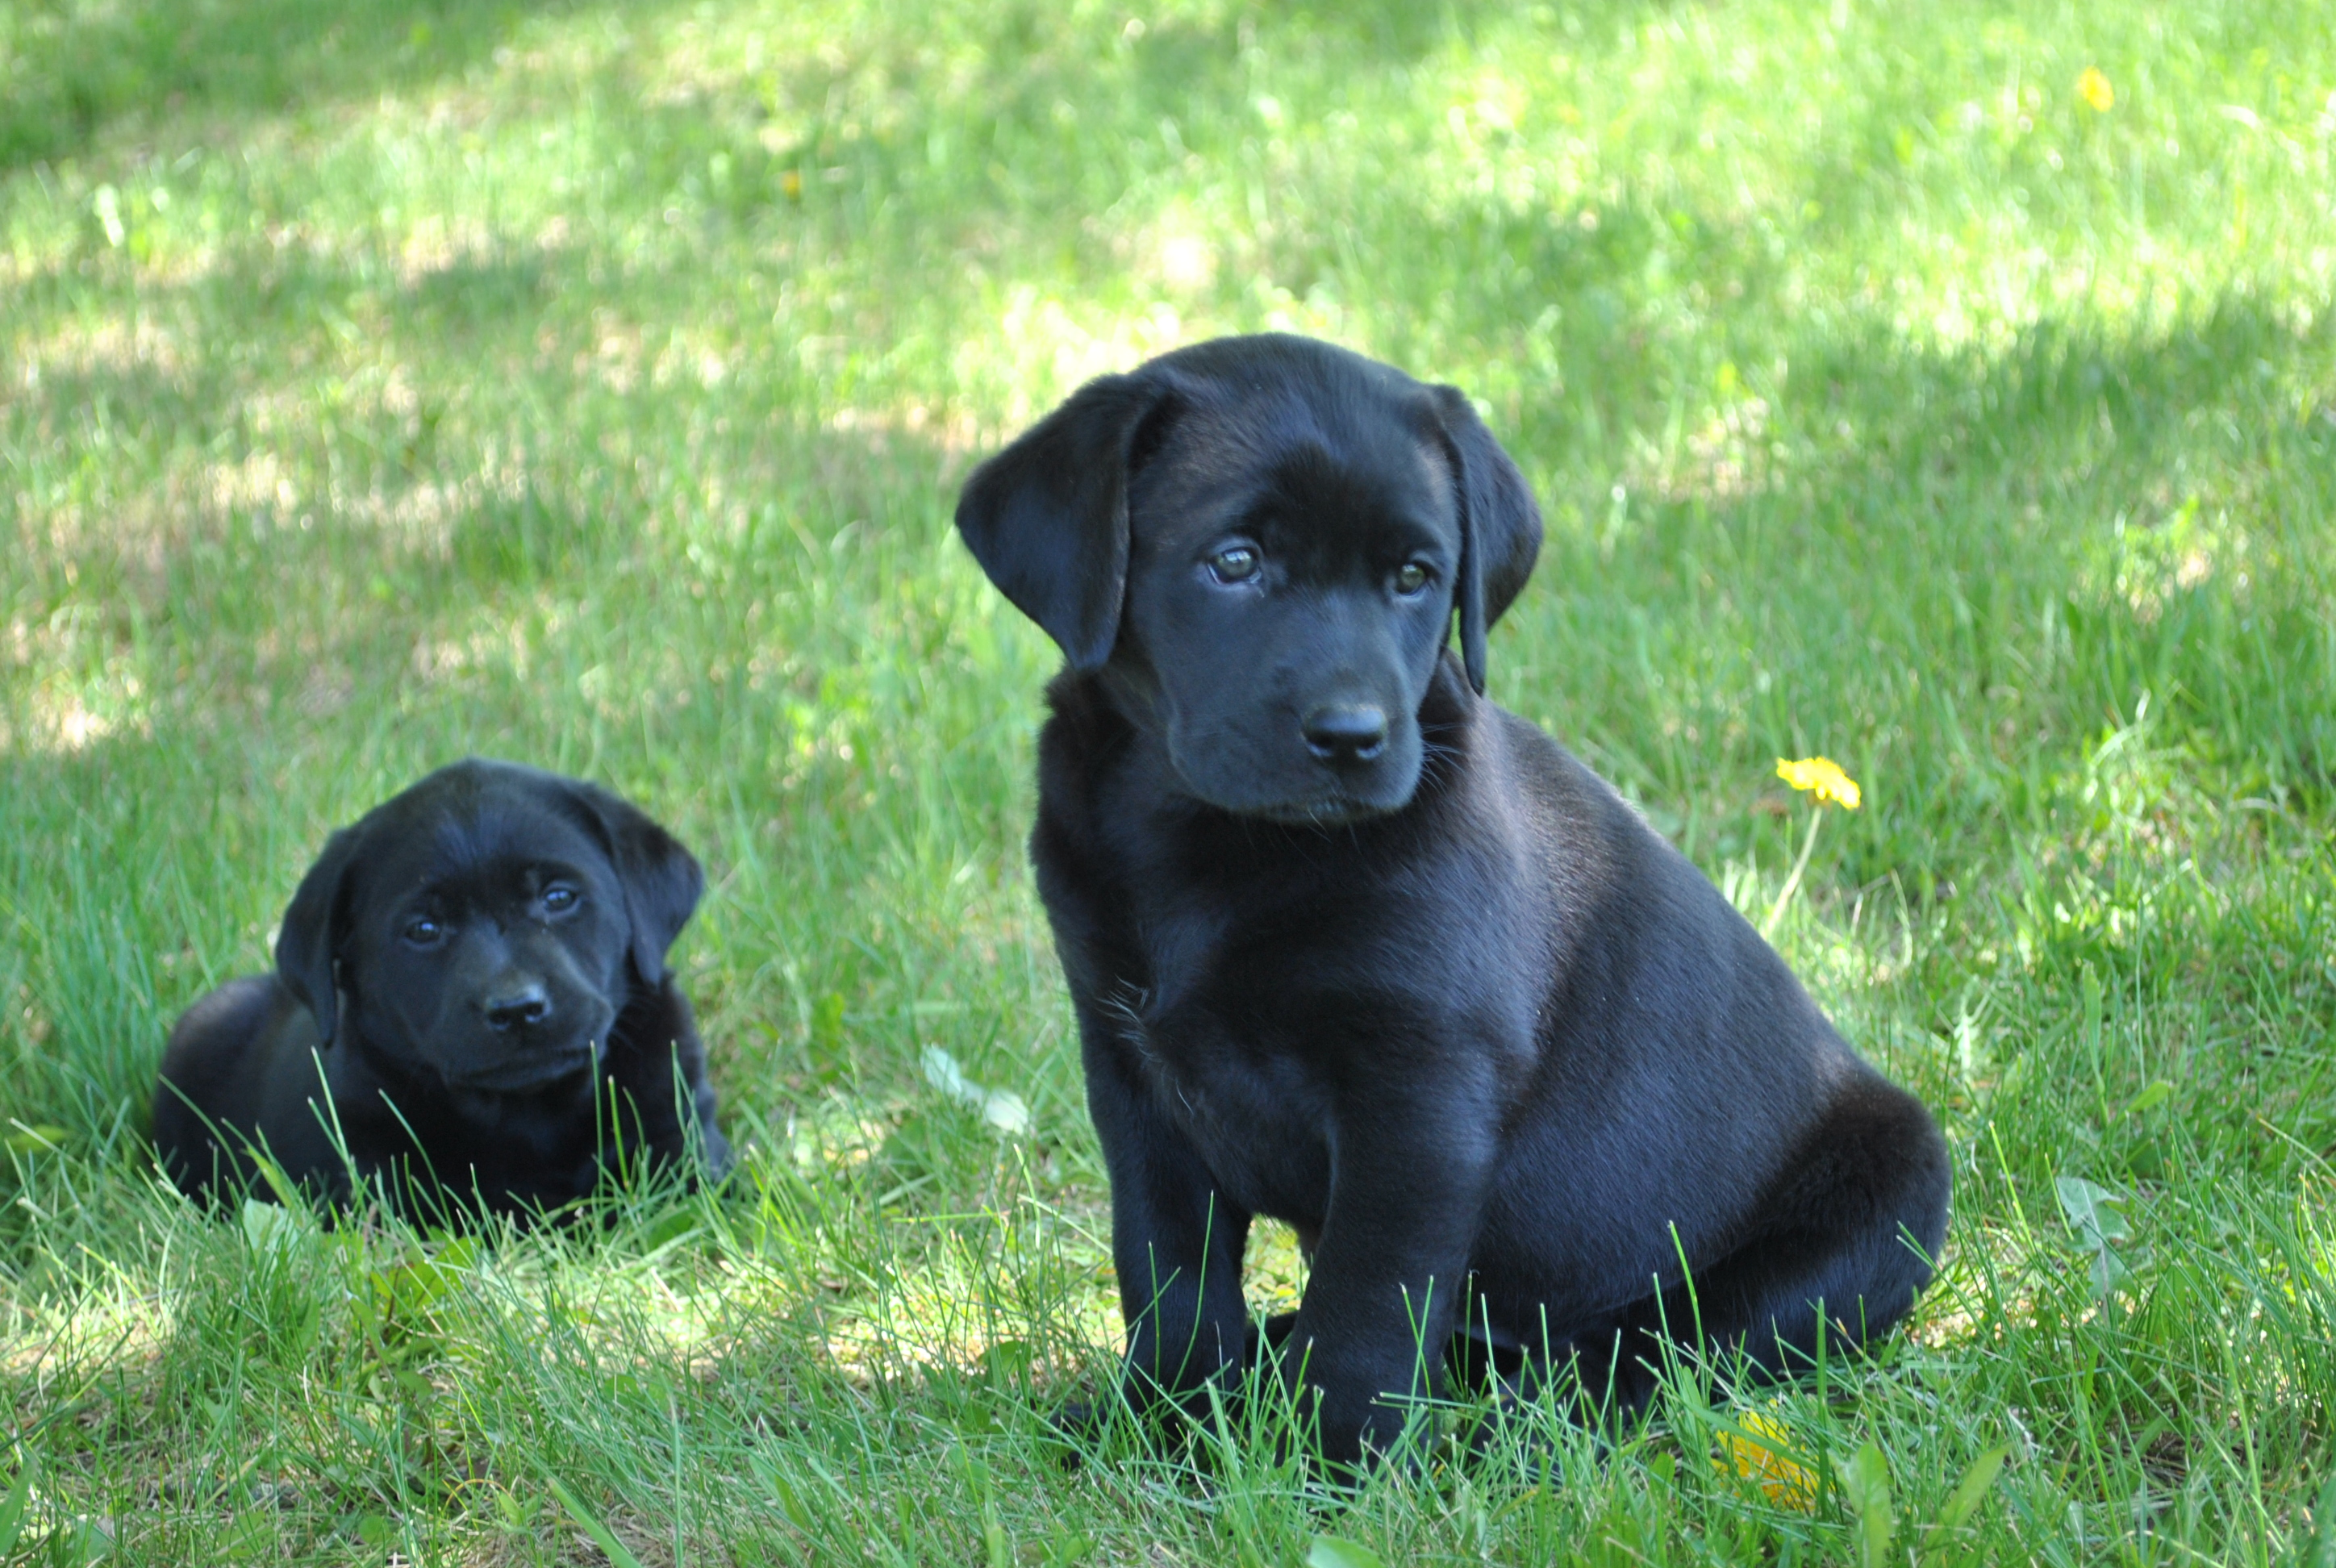 wallpaper Black Lab Puppy Images hd wallpaper background desktop 2896x1944